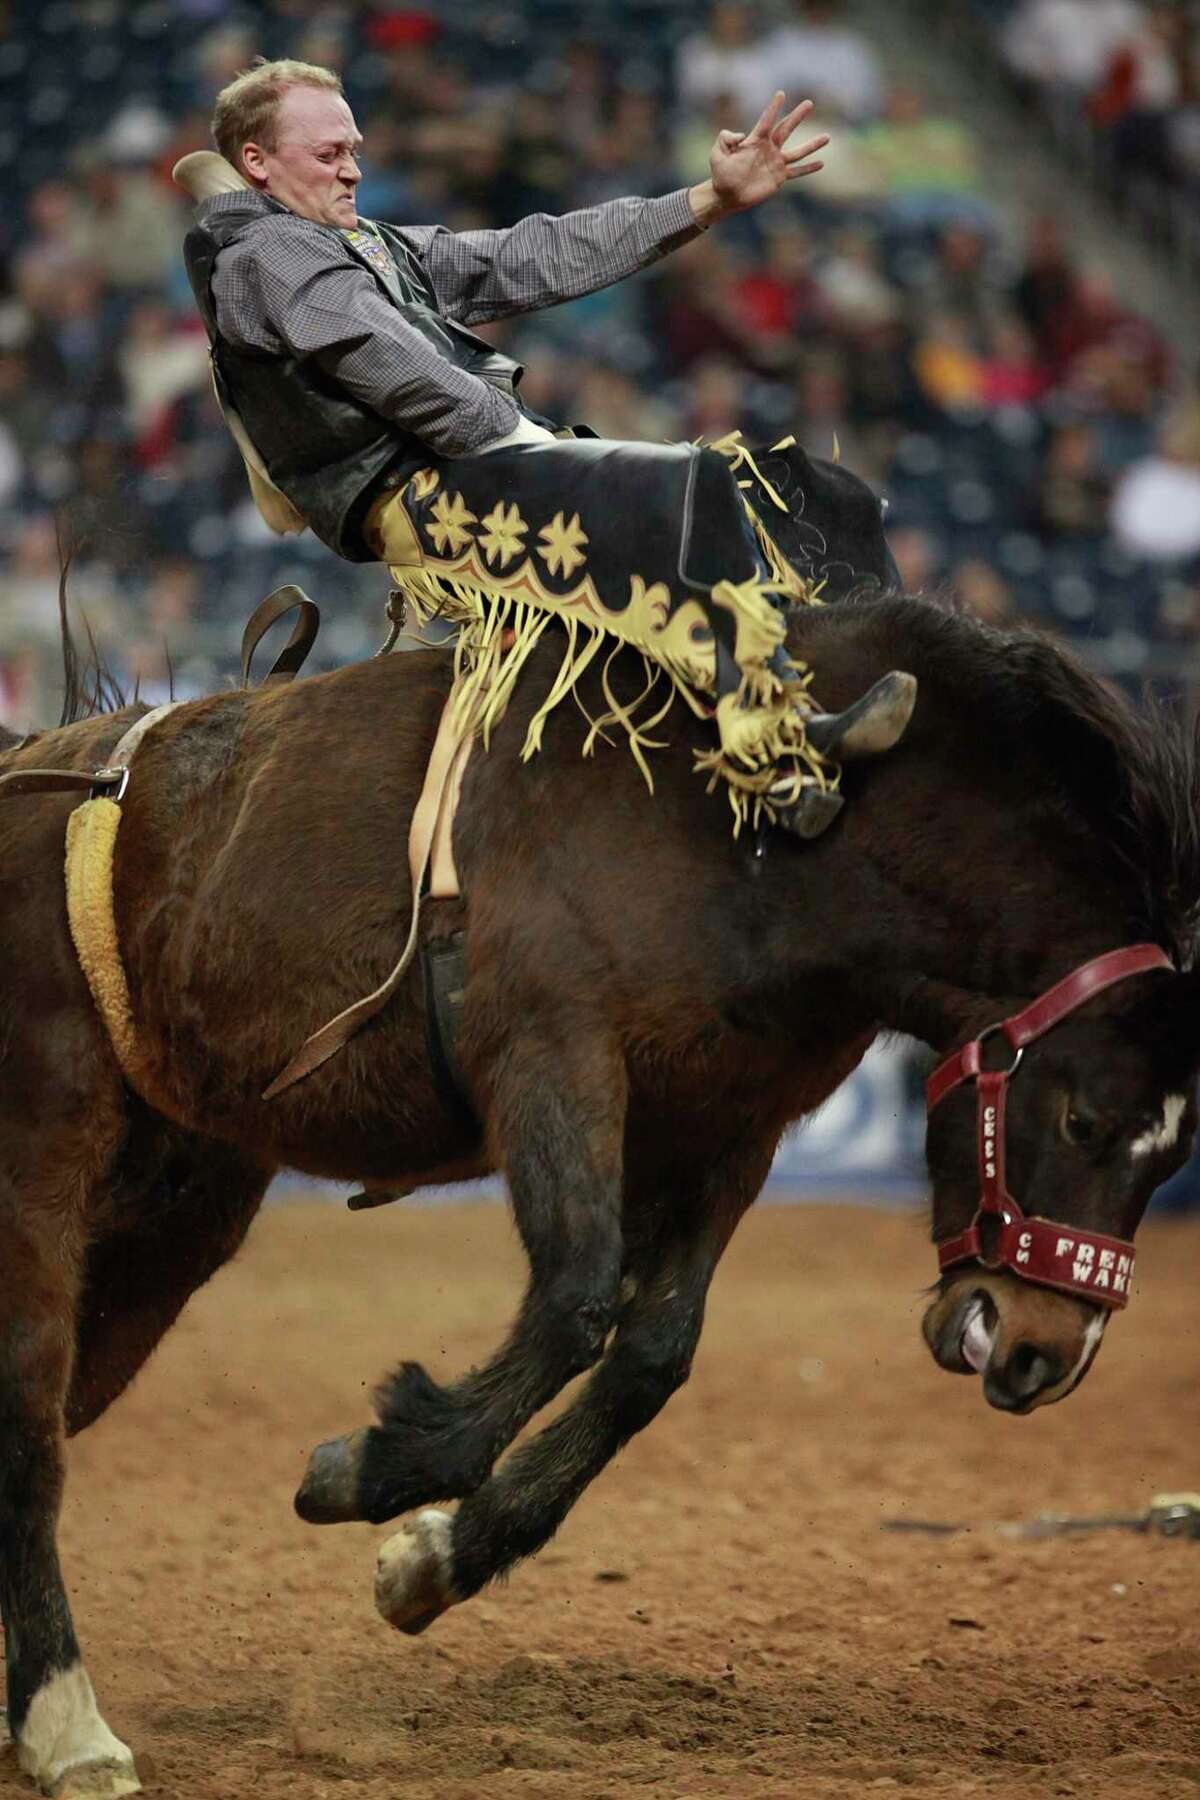 Betcha a buck that you can't answer all these questions. Russ Hallaby competes in the Bareback Riding in the Rodeo Livestock Show and Rodeo Super Series kicks off tonight at Reliant Stadium on March 2, 2010 in Houston, TX. Photo by Mayra Beltran / Houston Chronicle